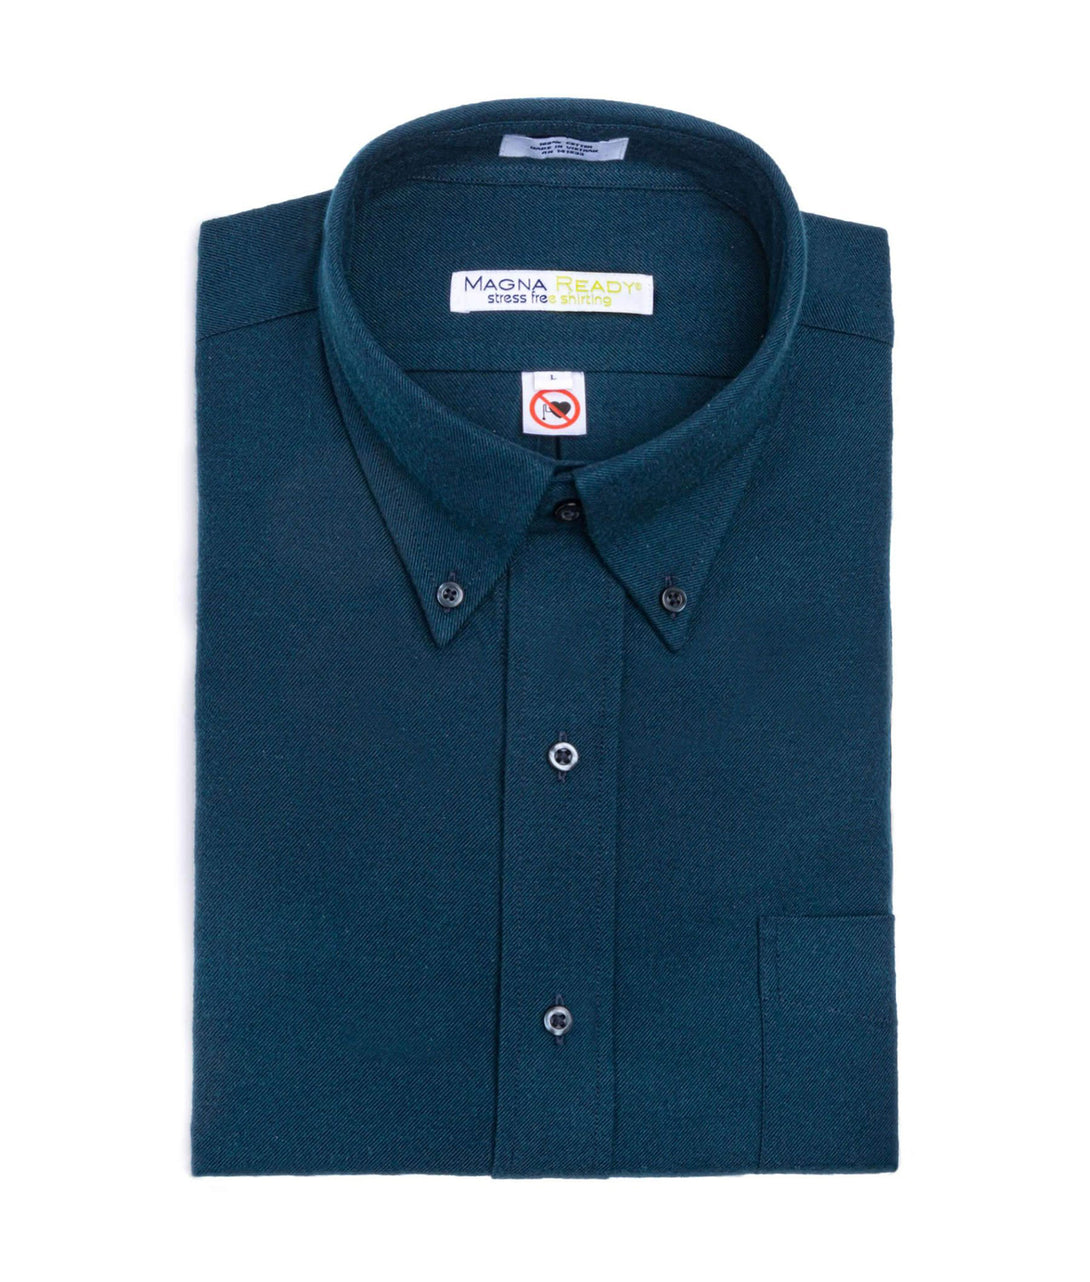 Dark Teal Flannel Long Sleeve Shirt with Magnetic Closures | JUNIPERunltd